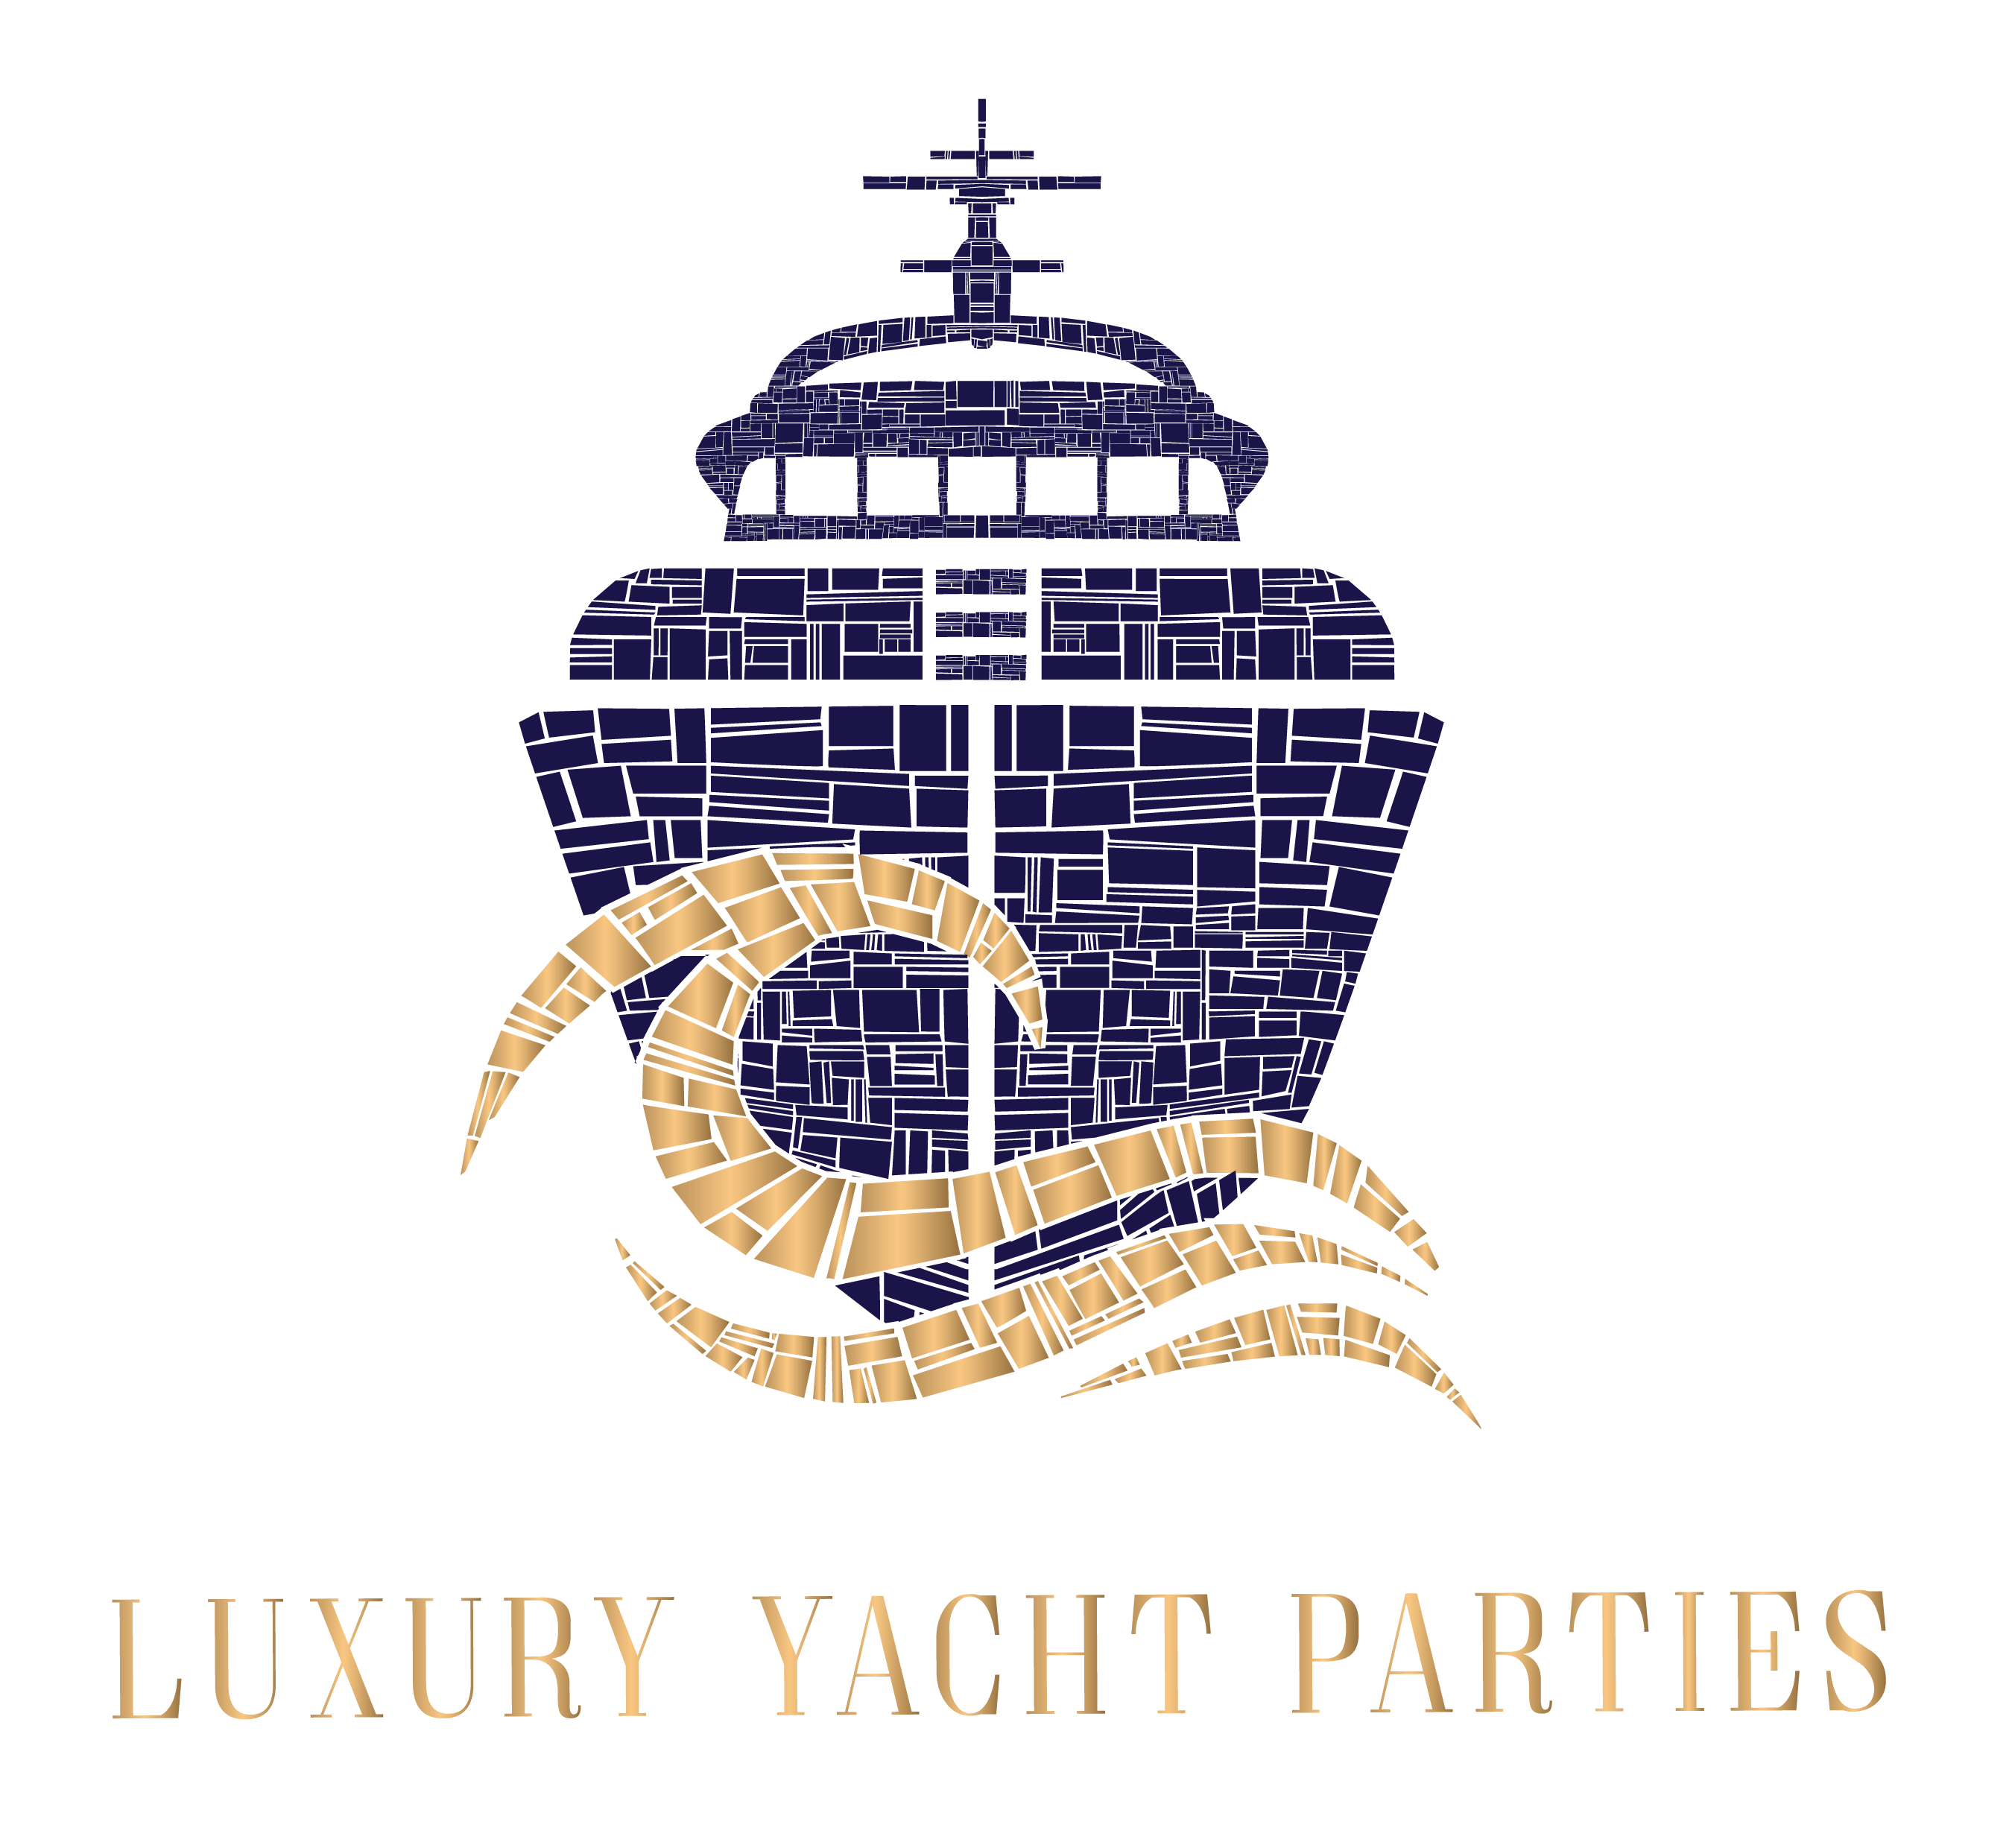 Luxury Yacht Parties